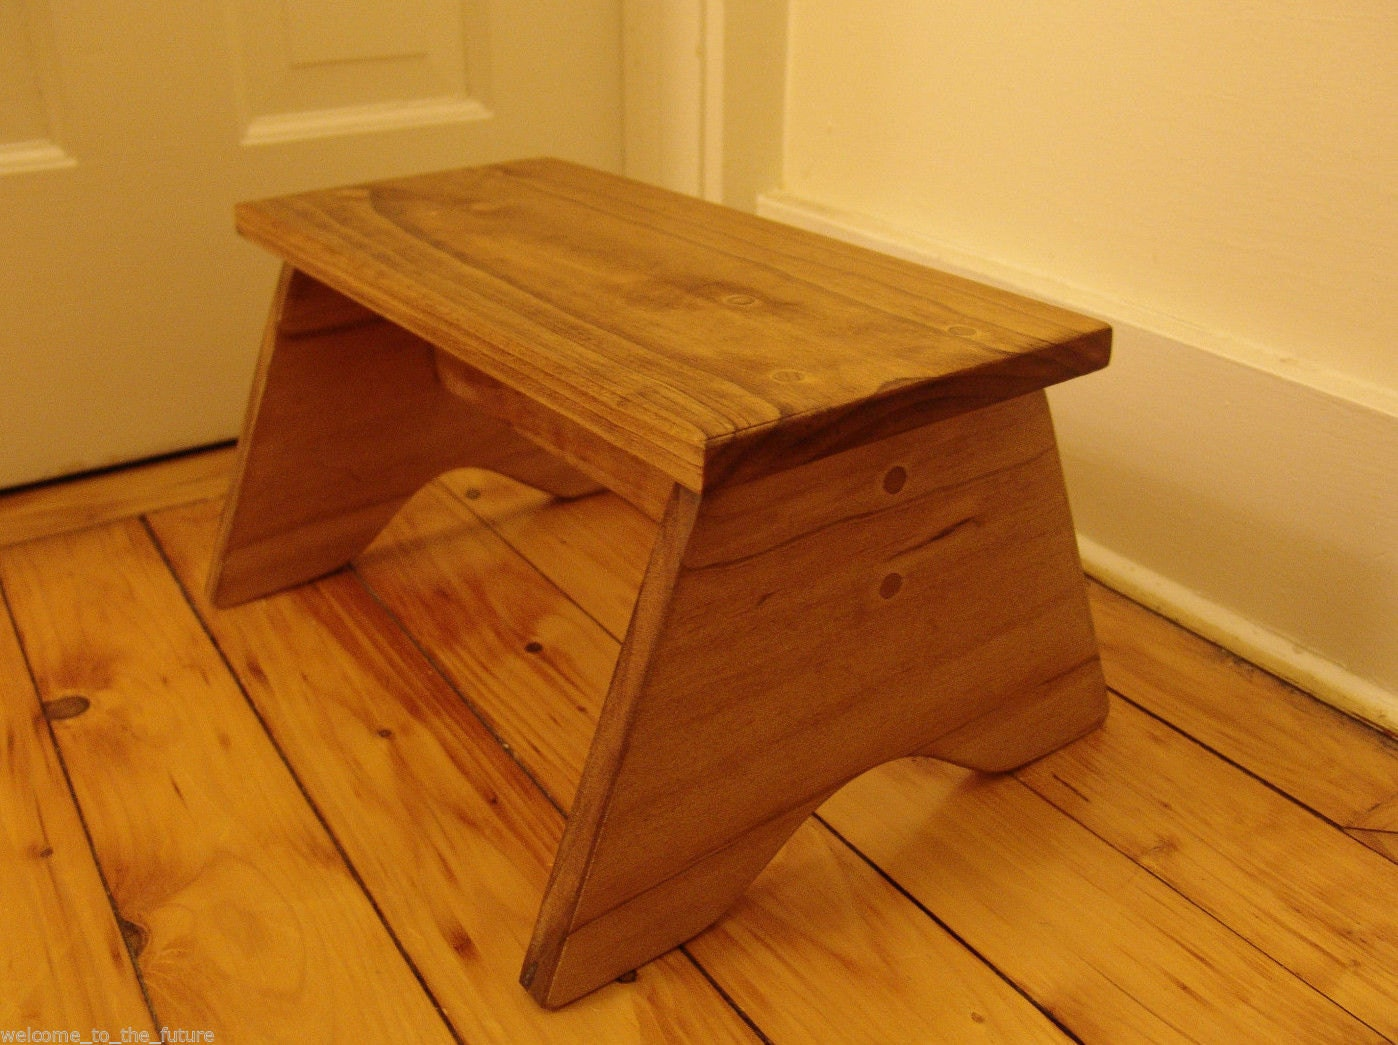 Handcrafted Heavy Duty Step Stool Compact Wood Kids Bathroom